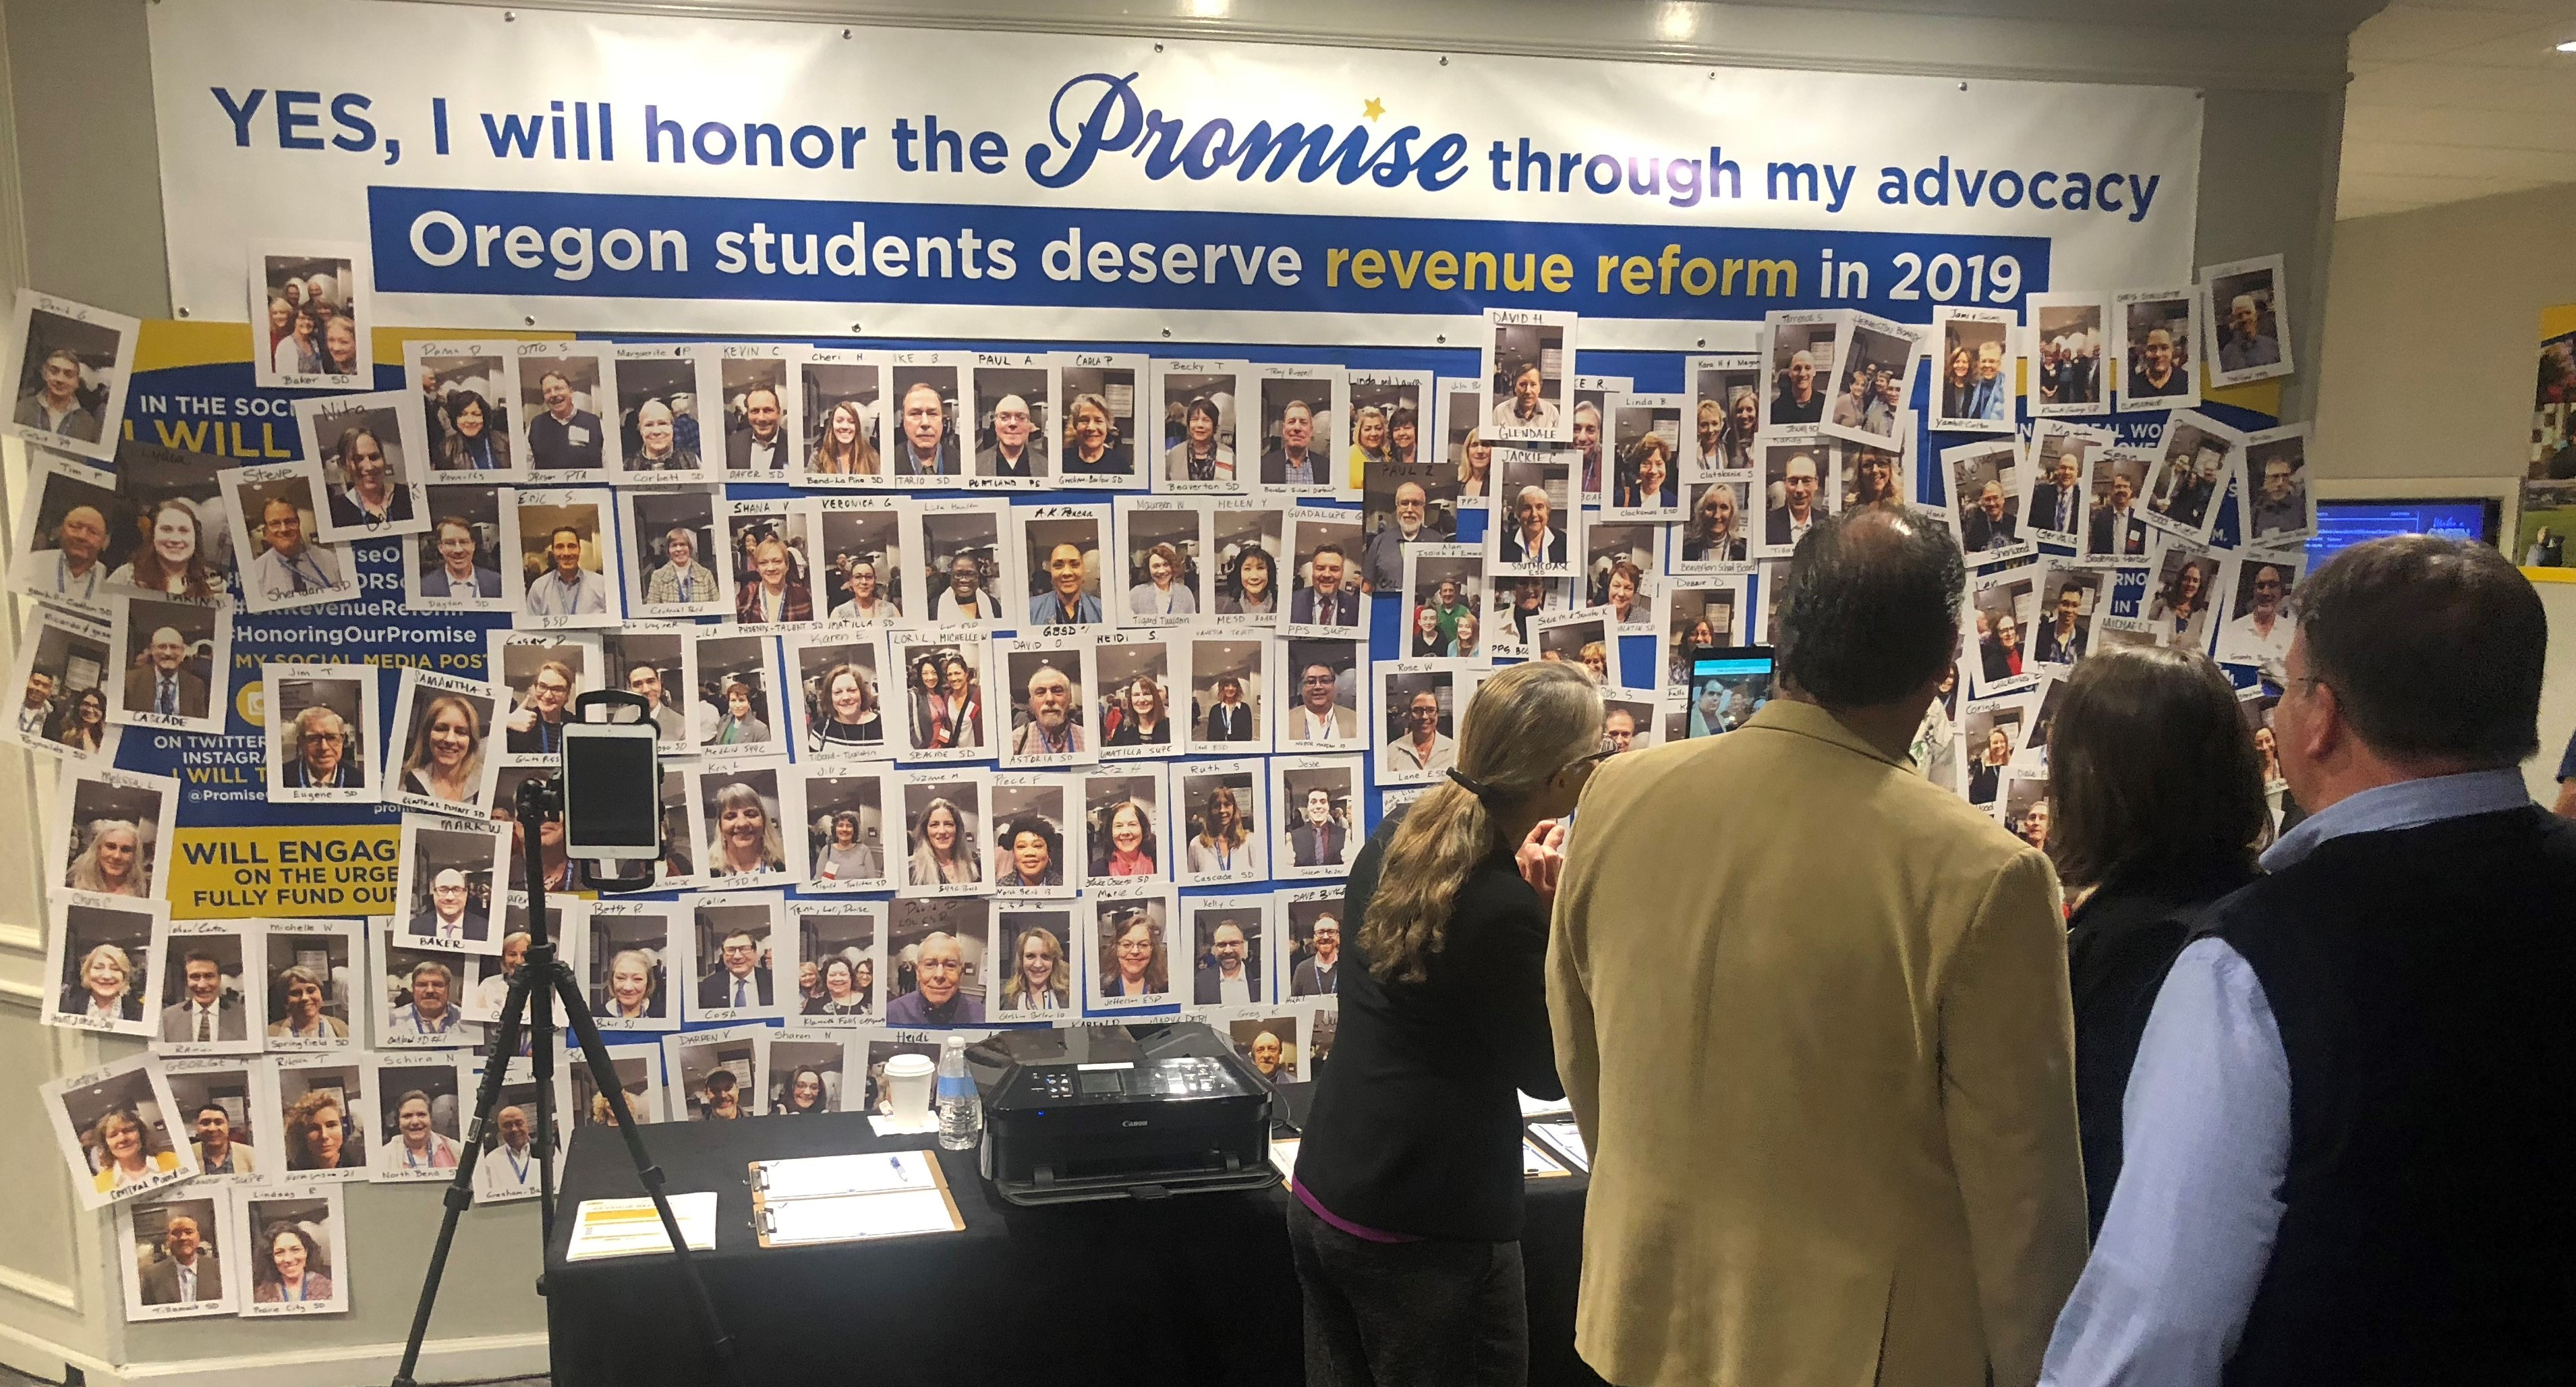 Photo of Advocacy Wall at OSBA convention.